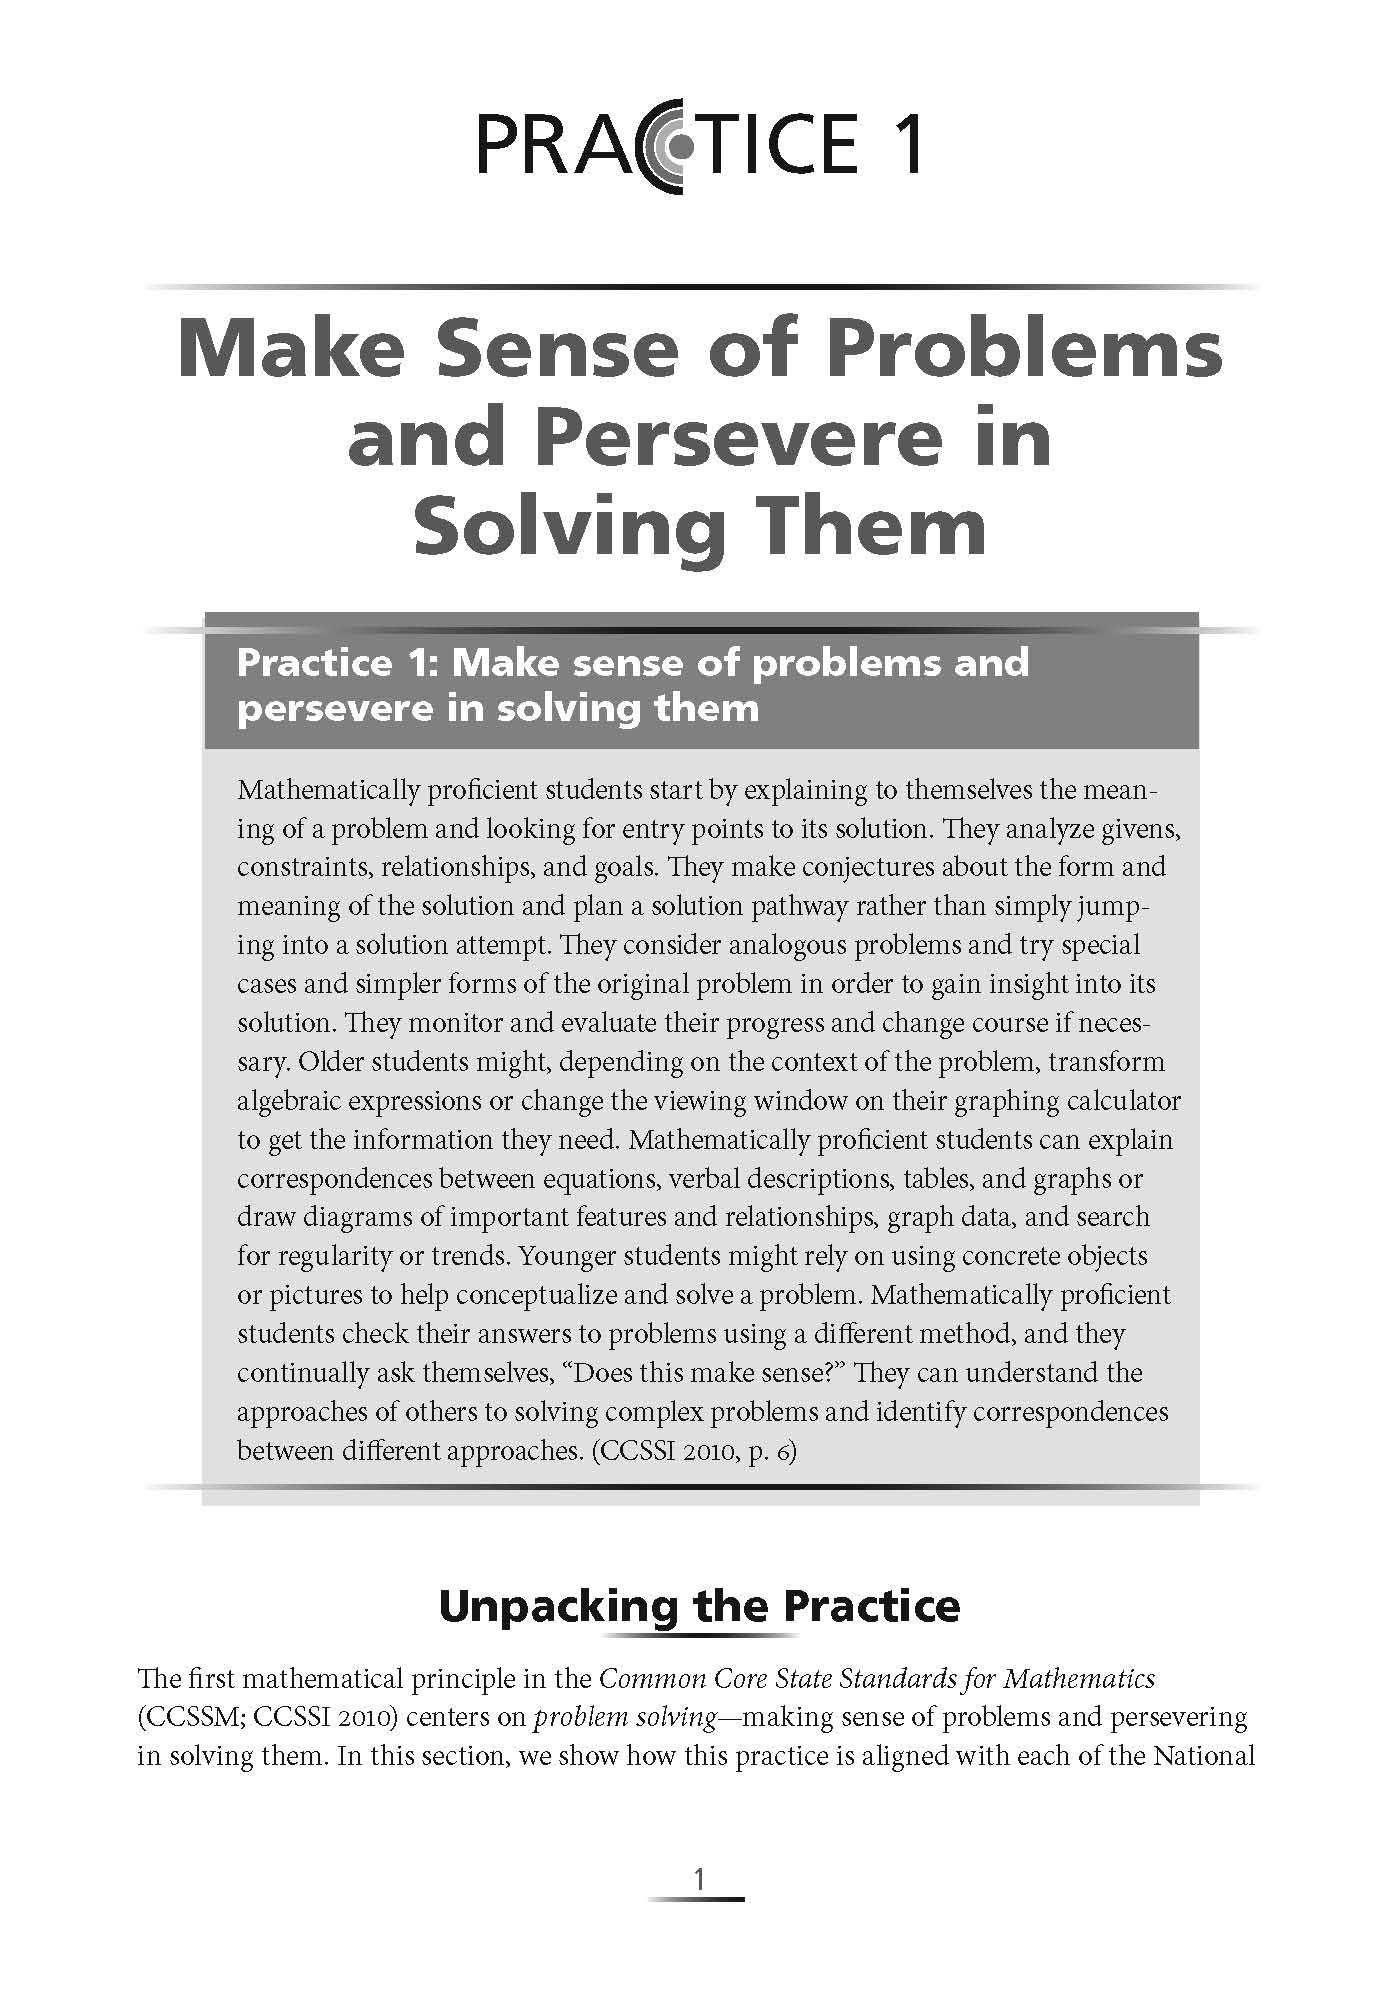 Excerpt from Connecting the NCTM Process Standards & the CCSSM Practices